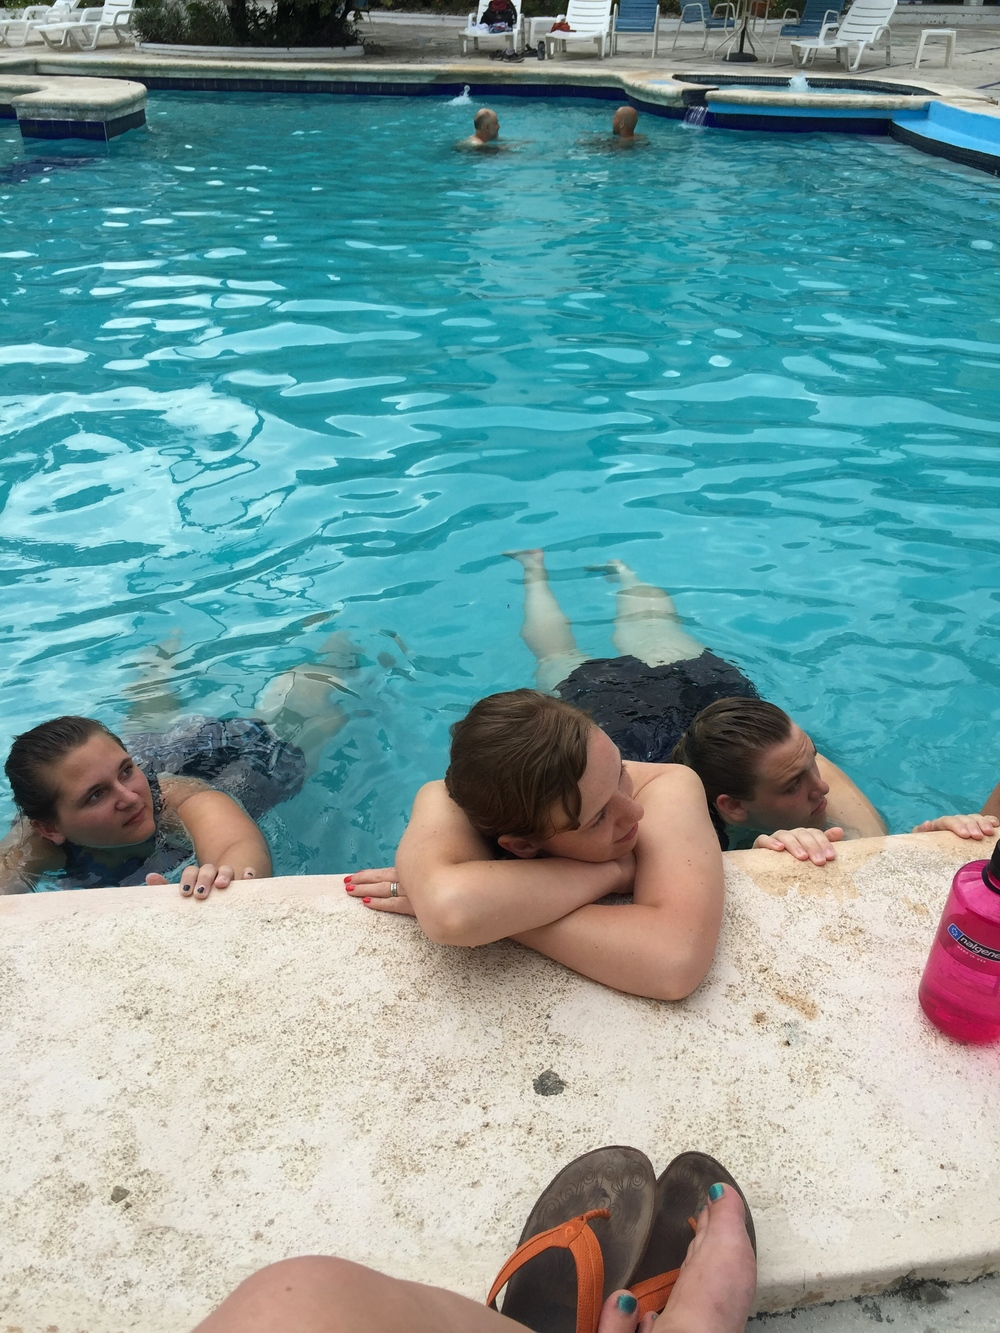 and we ended our day by the pool relaxing for the weekend. End of ministry for the week. Sad it's over but happy it happened. Thanks for reading!